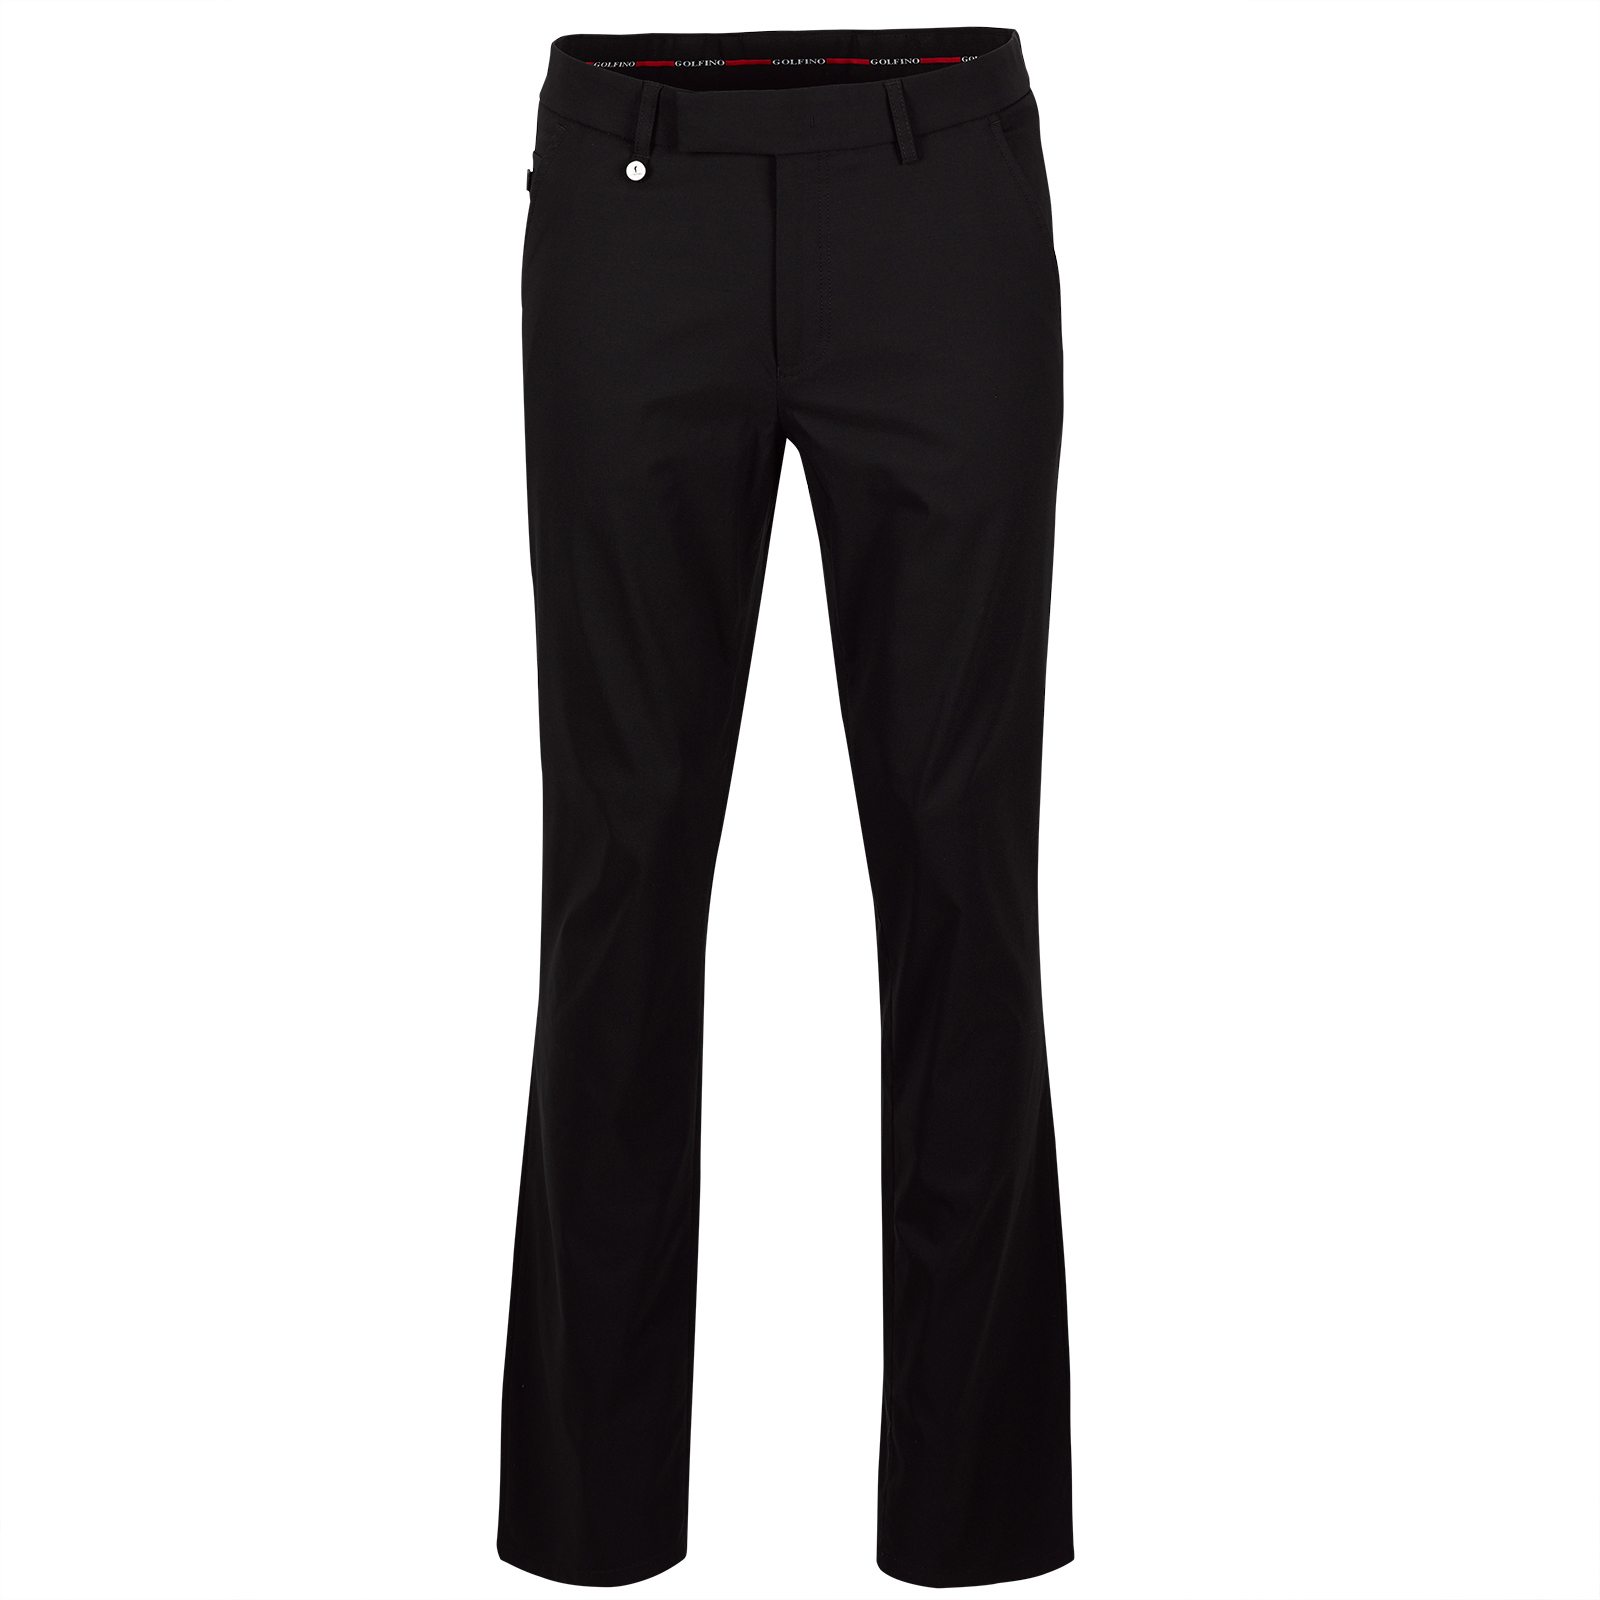 Men techno stretch golf trousers with UV protection and moisture management